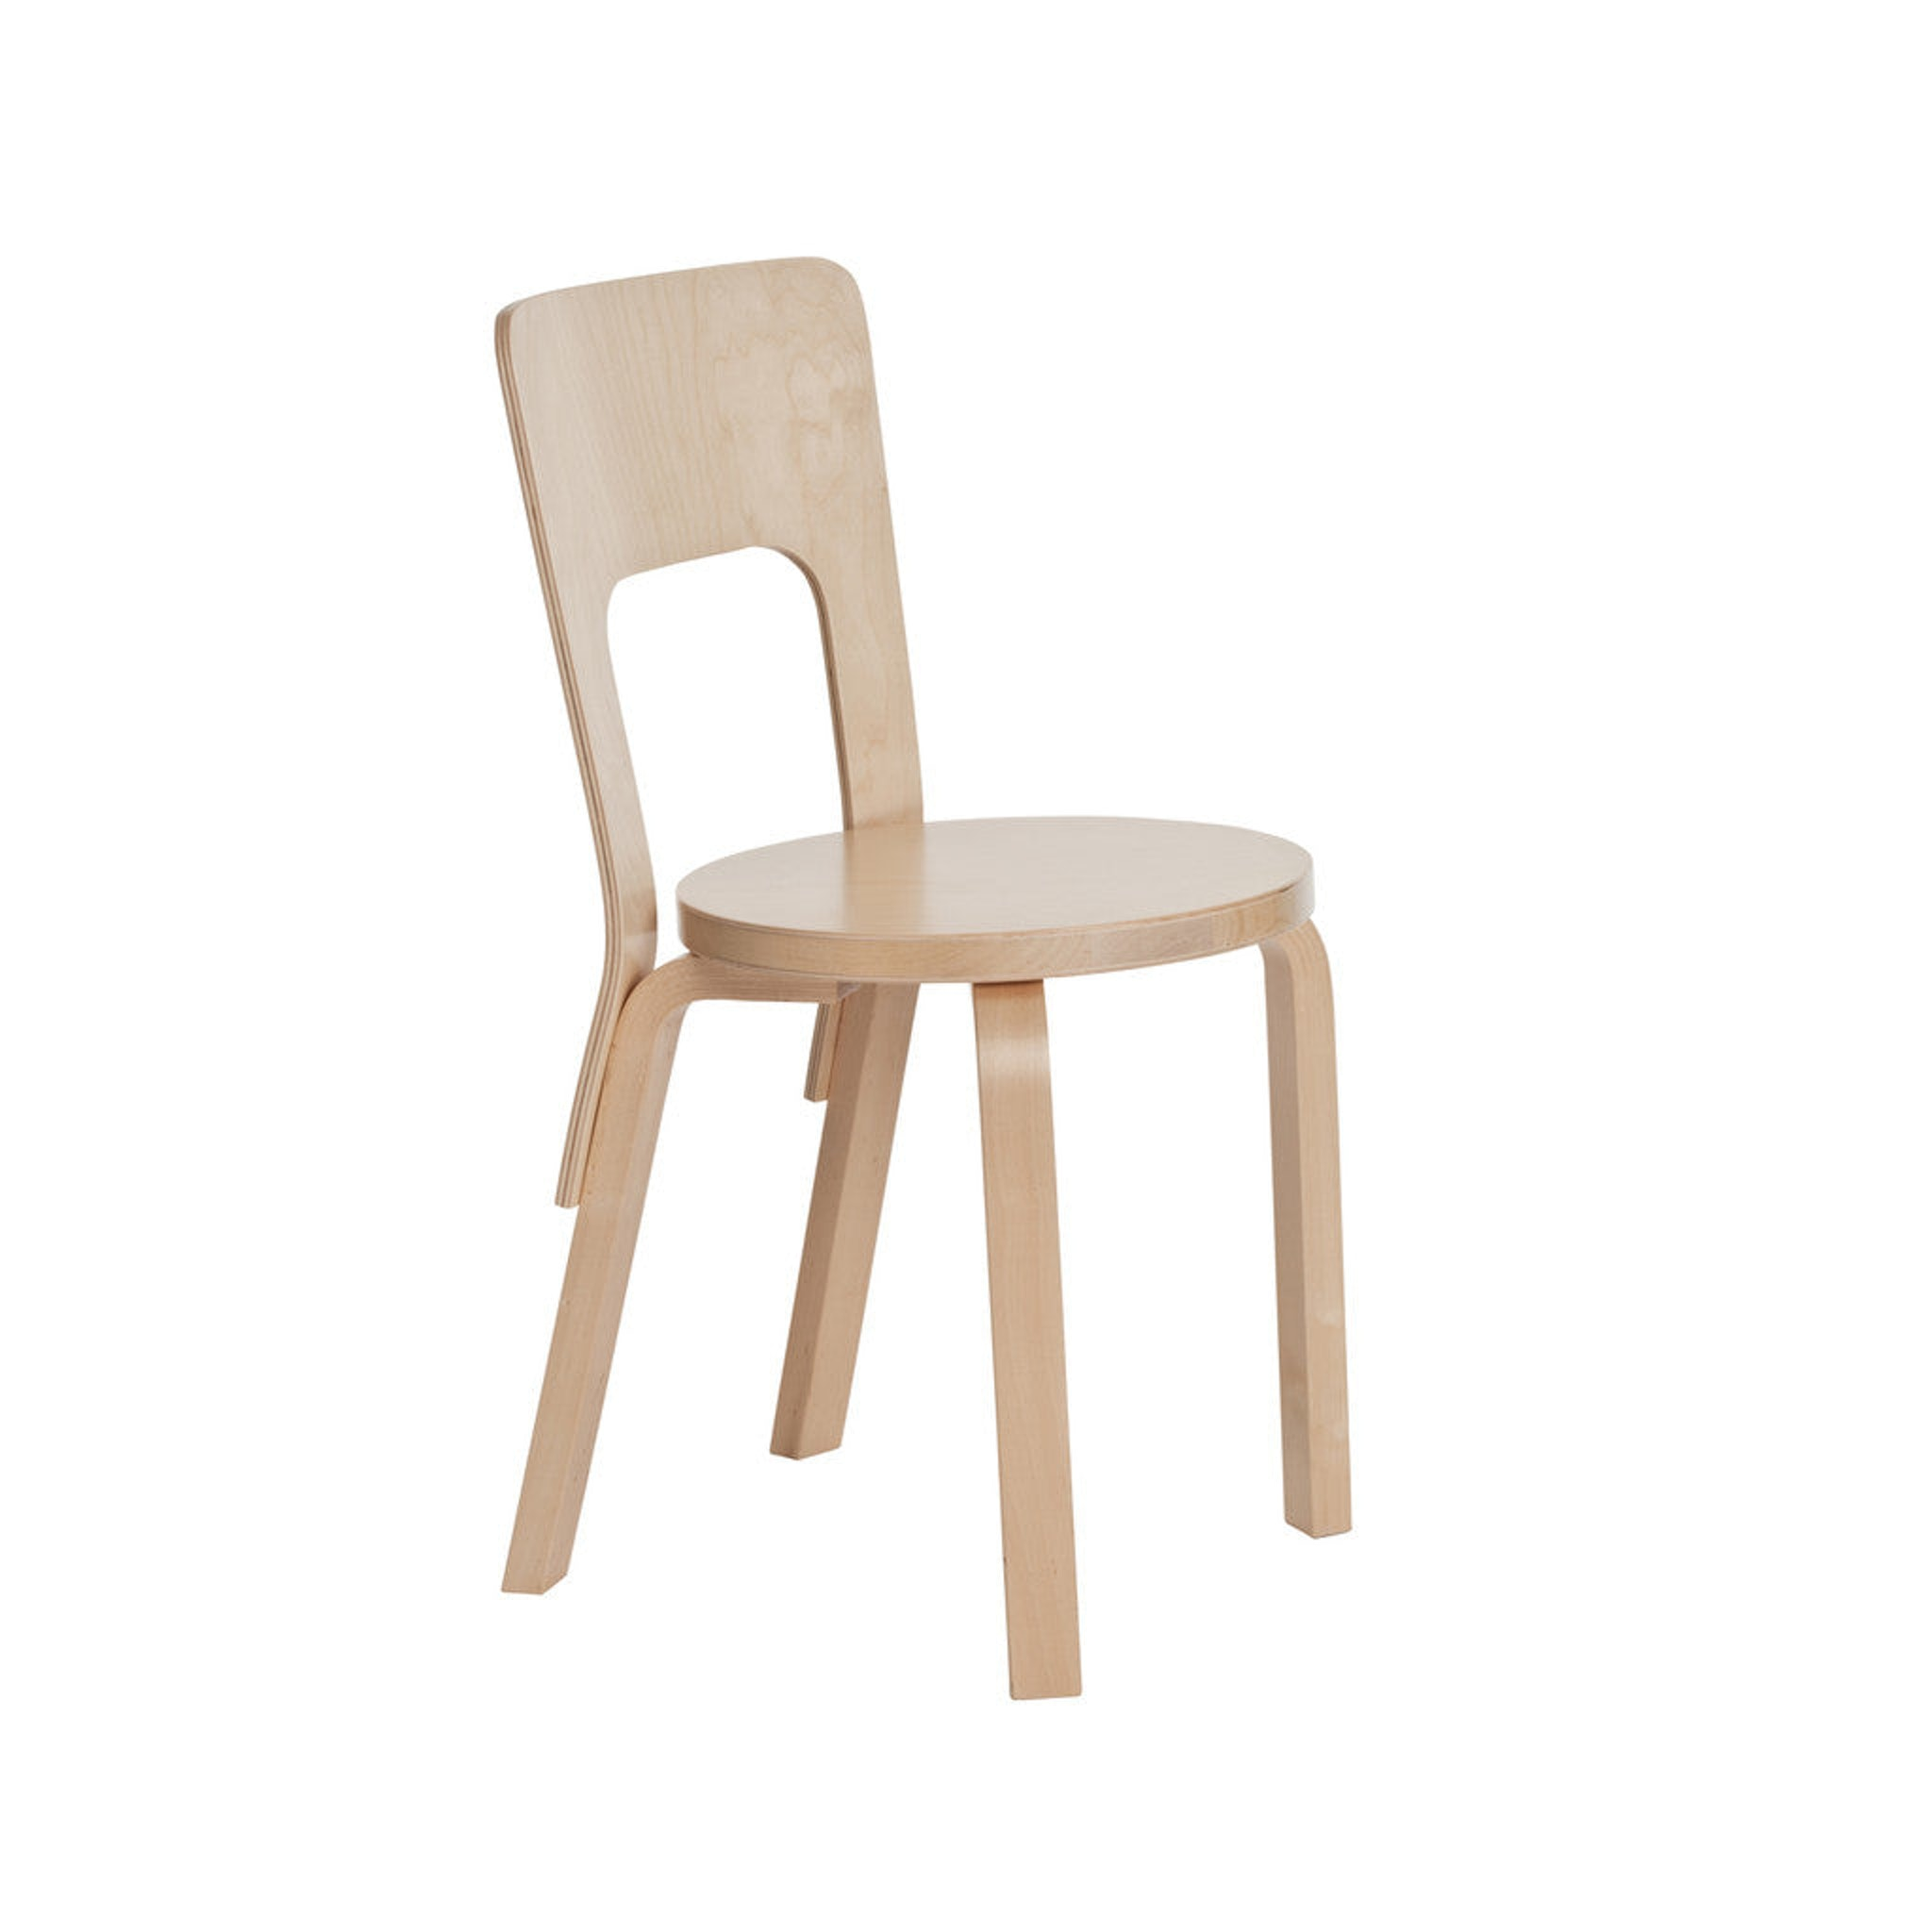 Chair 66 by Artek